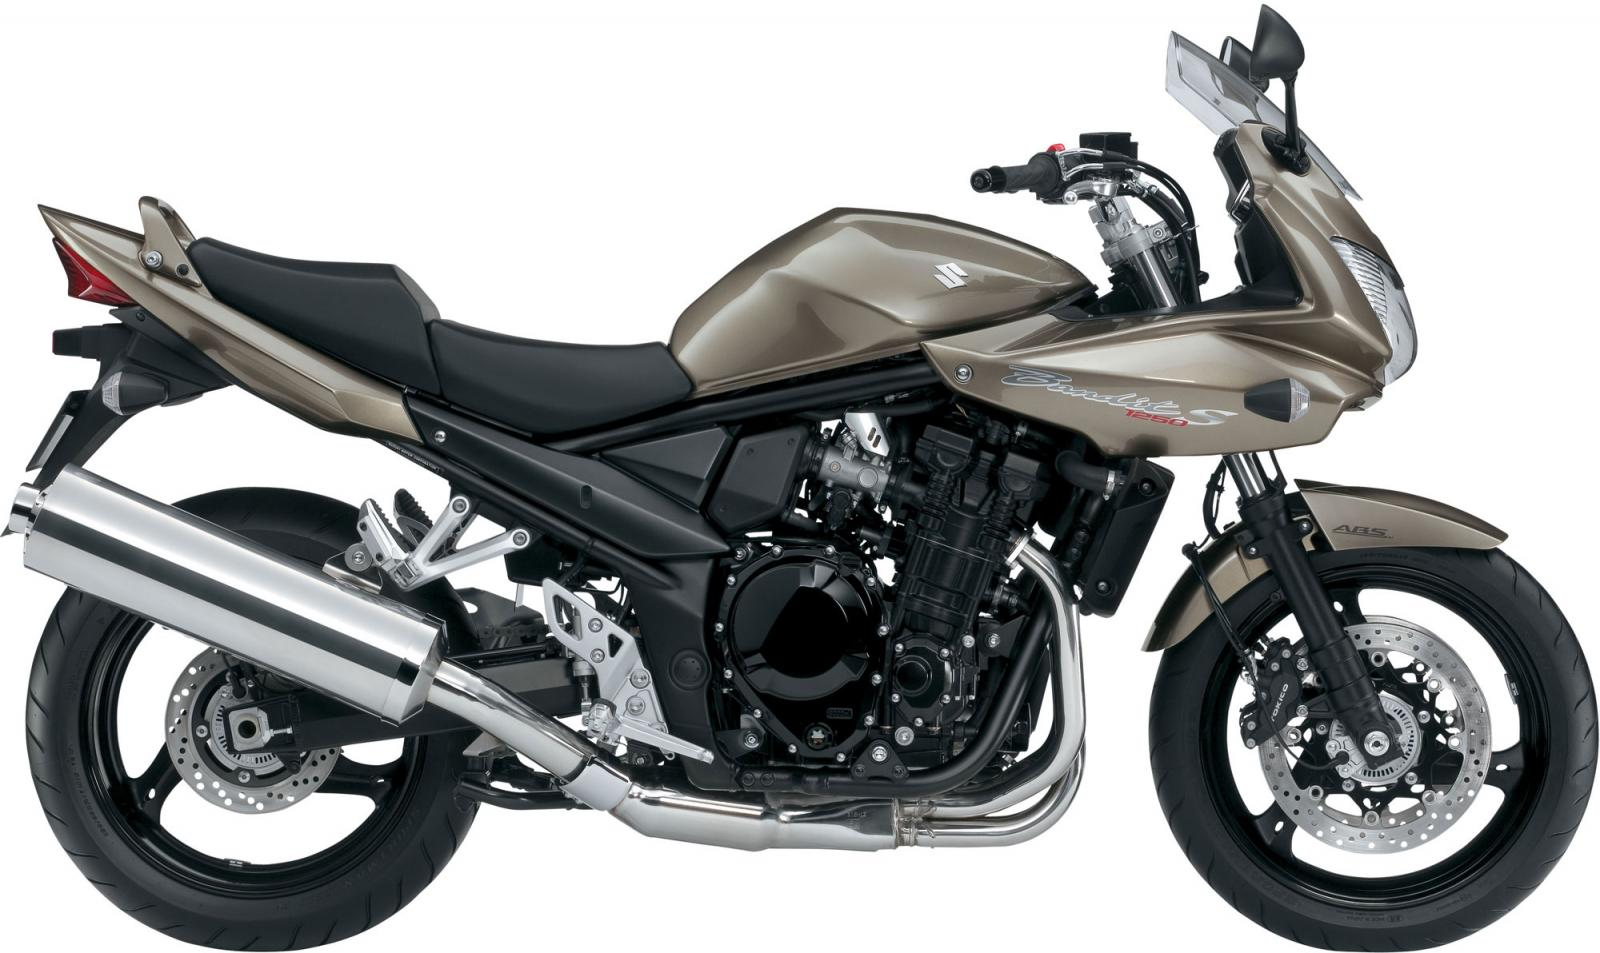 2012 suzuki bandit 1250s moto zombdrive com. Black Bedroom Furniture Sets. Home Design Ideas